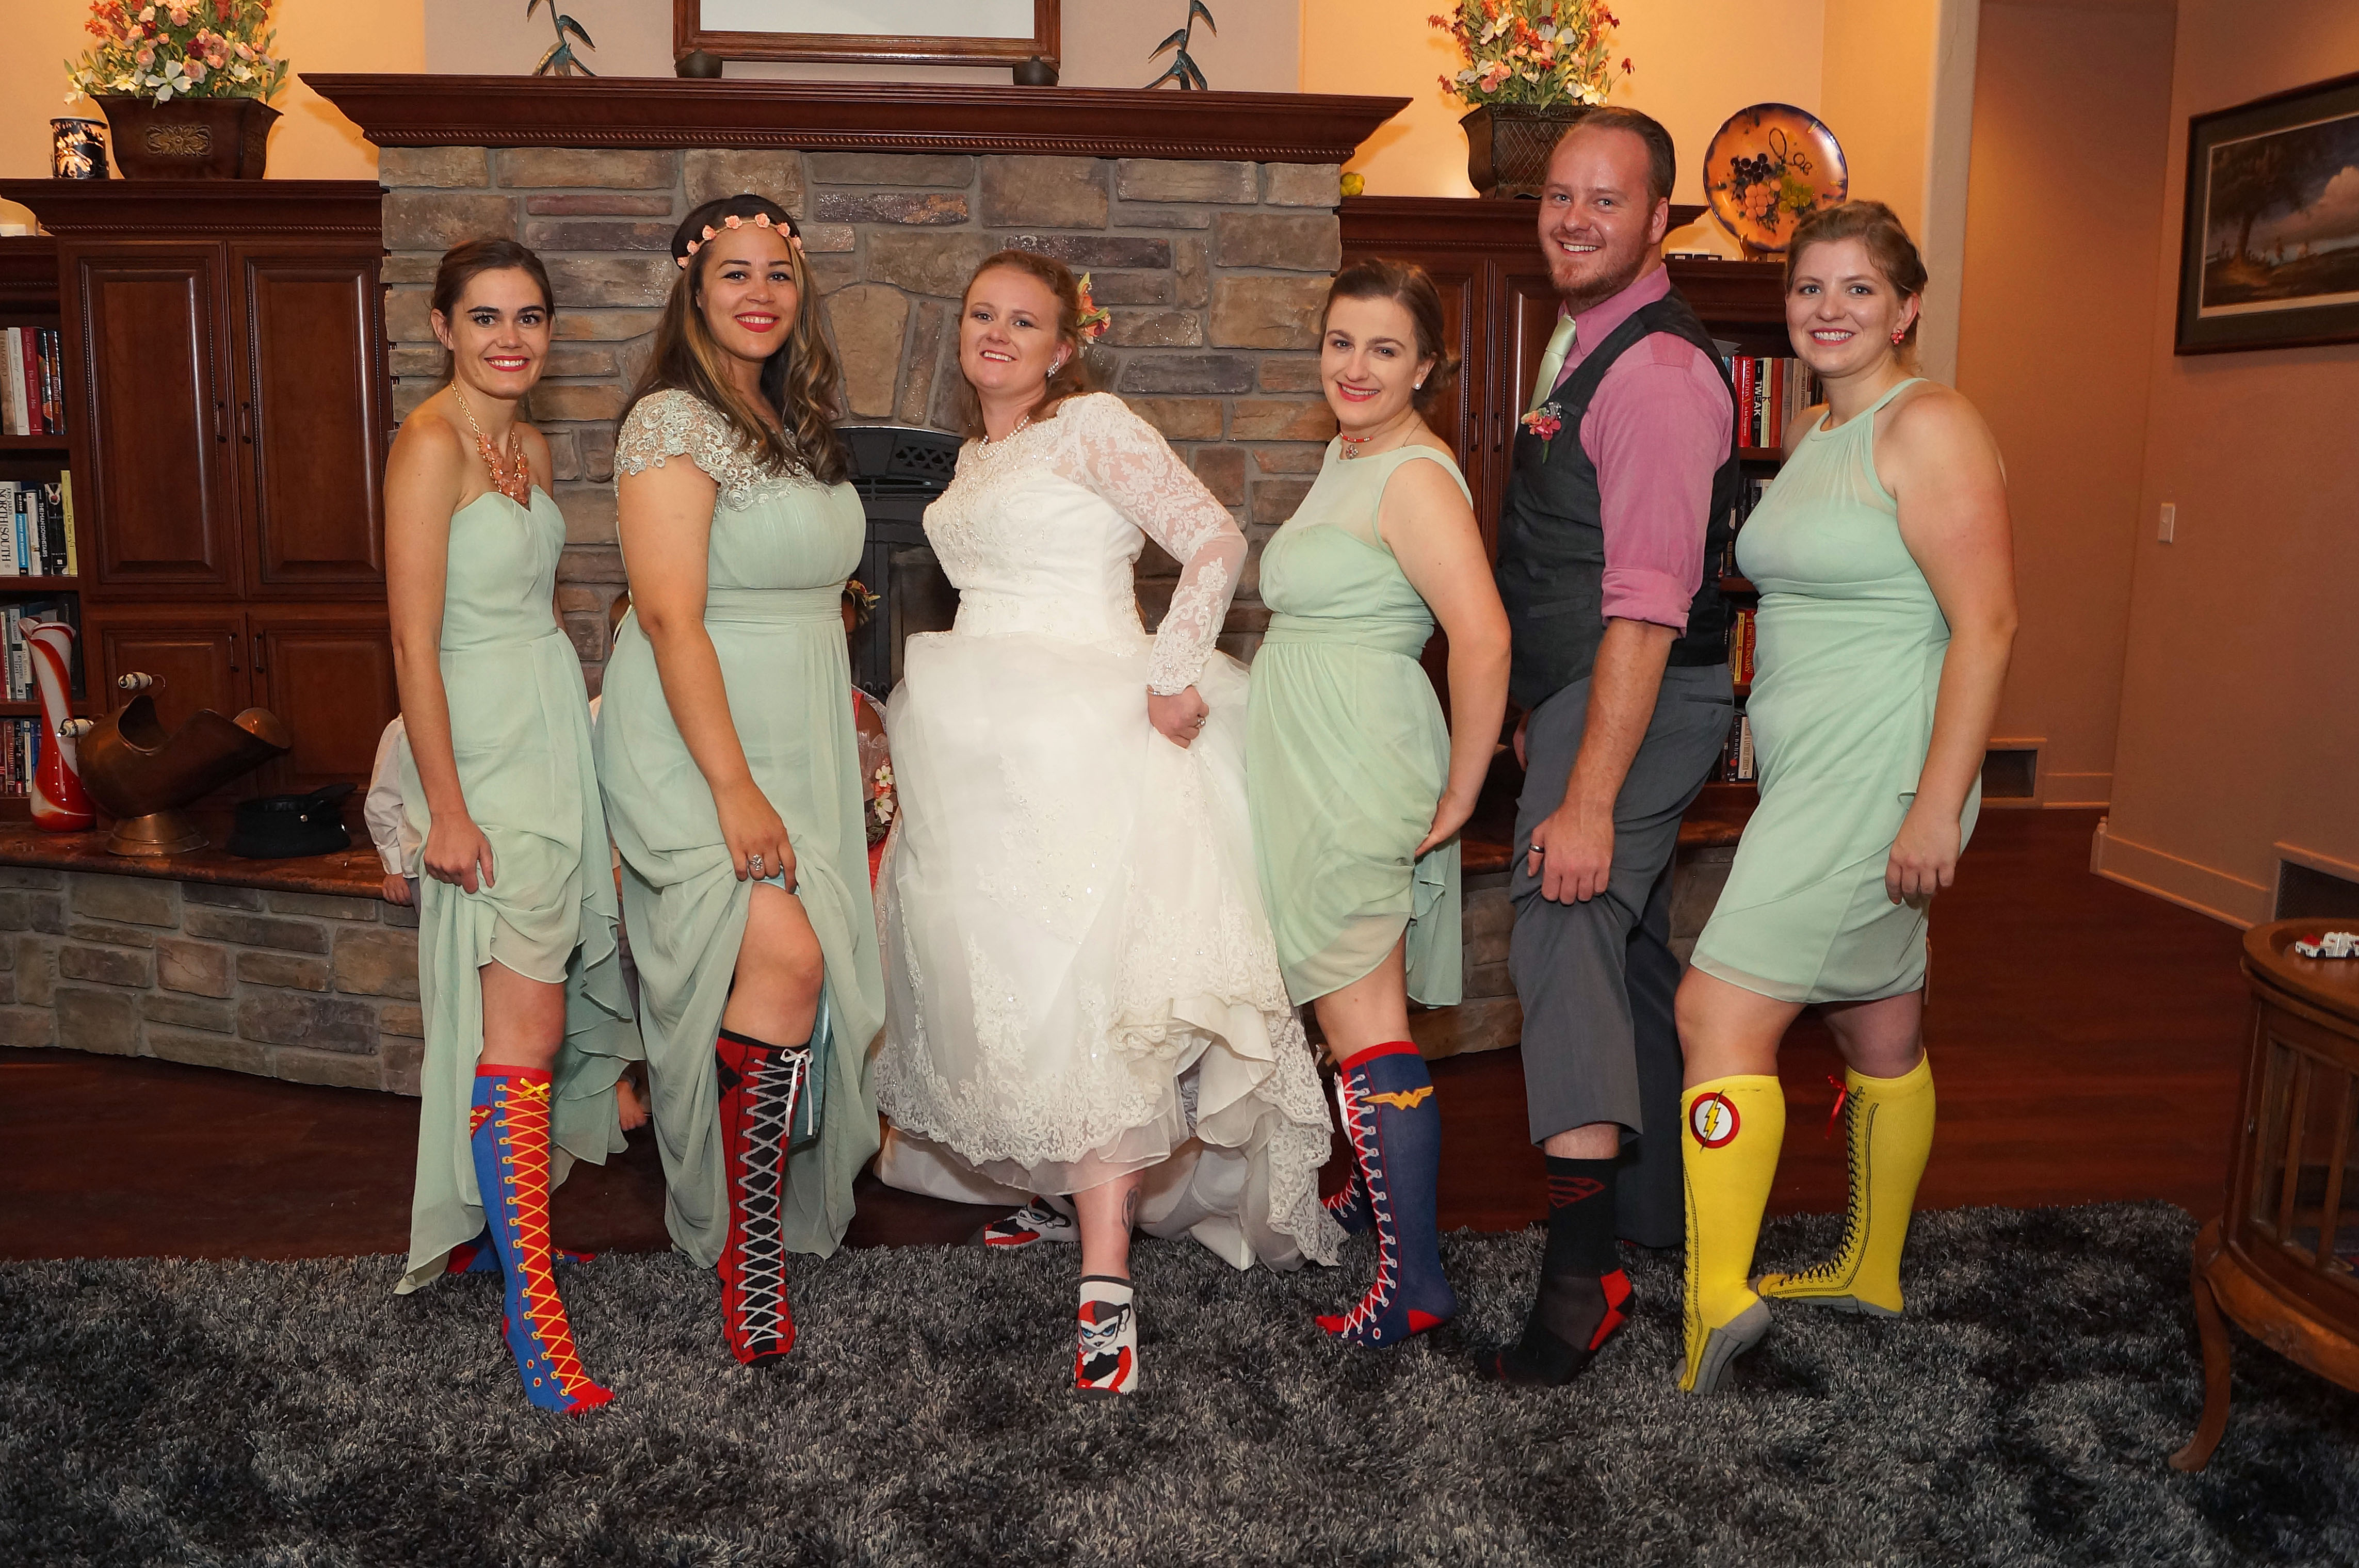 The Bridal Sqaud with DC socks